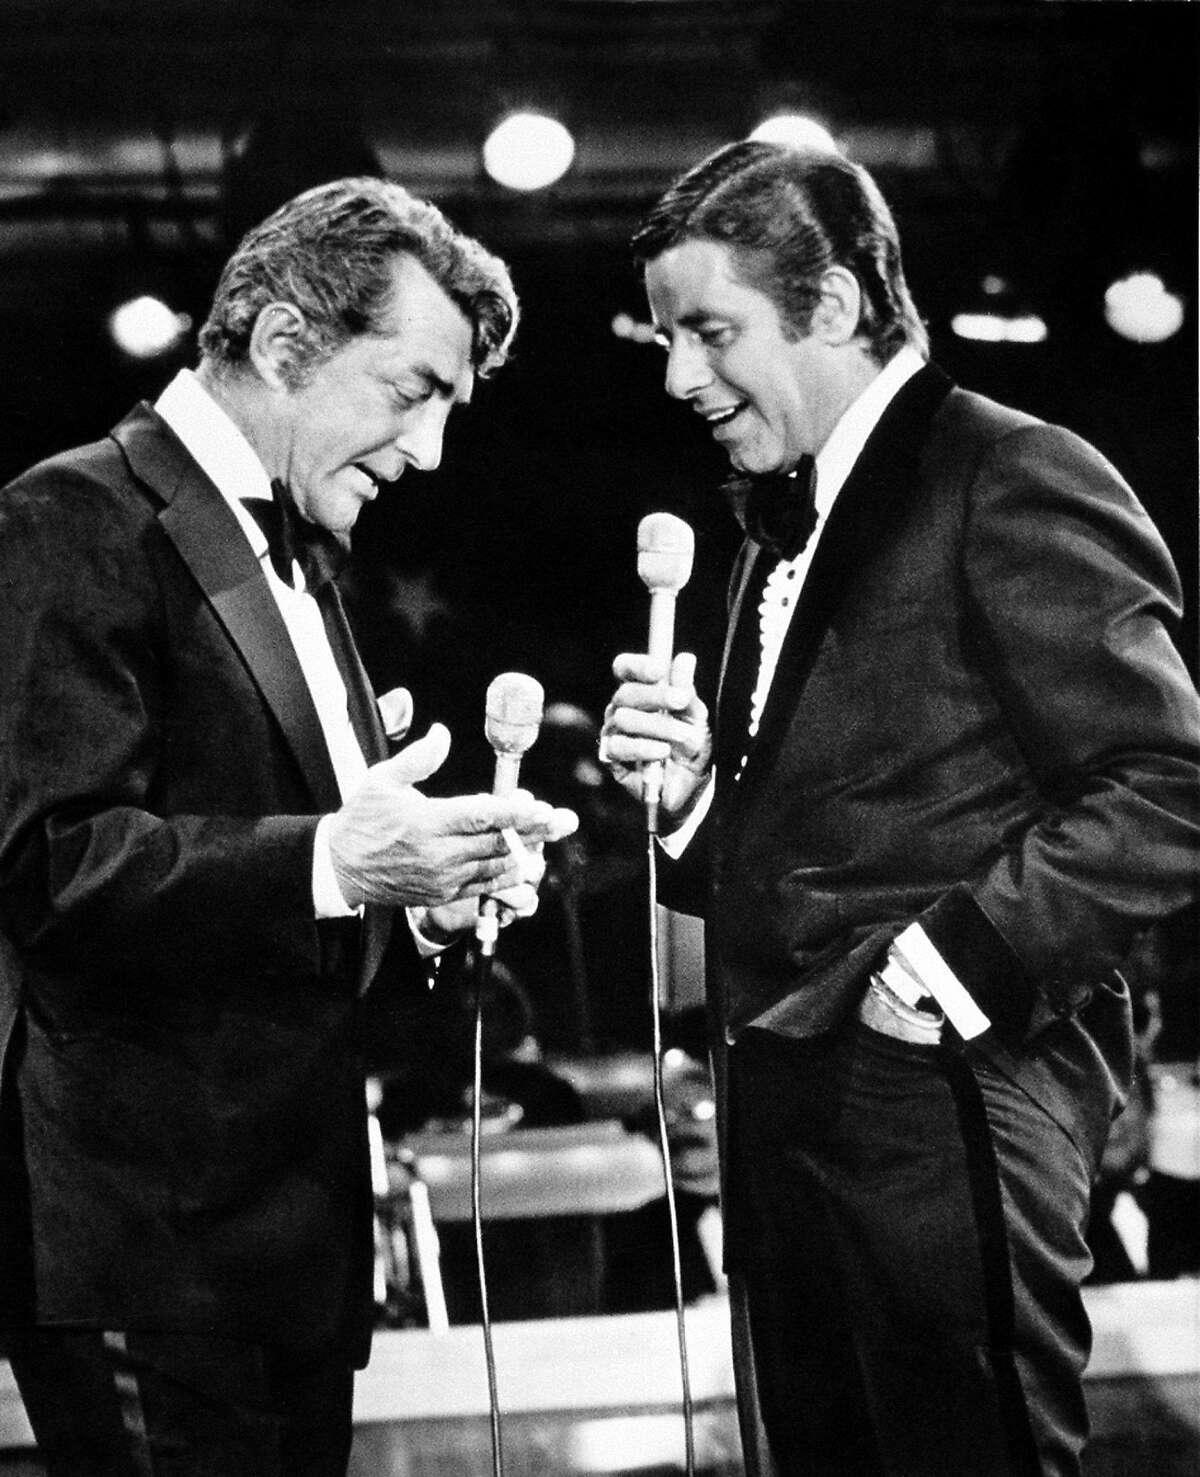 In this Sept. 7, 1976 file photo, entertainers Dean Martin, left, and Jerry Lewis appear together on Lewis's annual telethon for the Muscular Dystrophy Association in Las Vegas, NV.